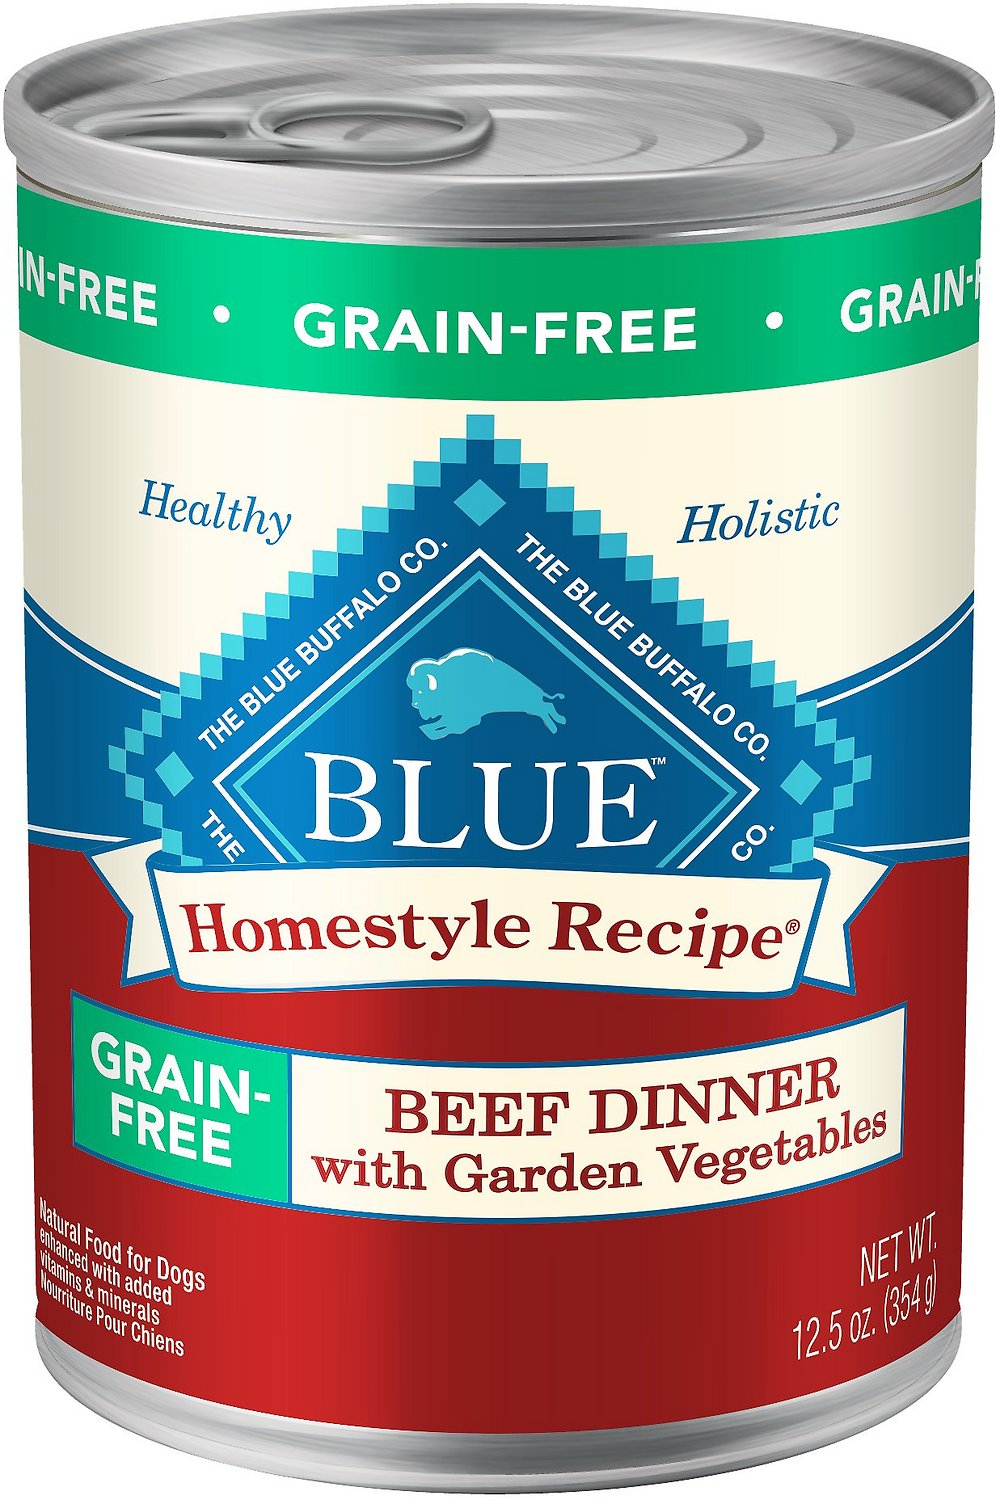 Blue Buffalo Homestyle Recipe Beef Dinner With Garden Vegetables Grain Free Canned Dog Food 12 5 Oz Case Of 12